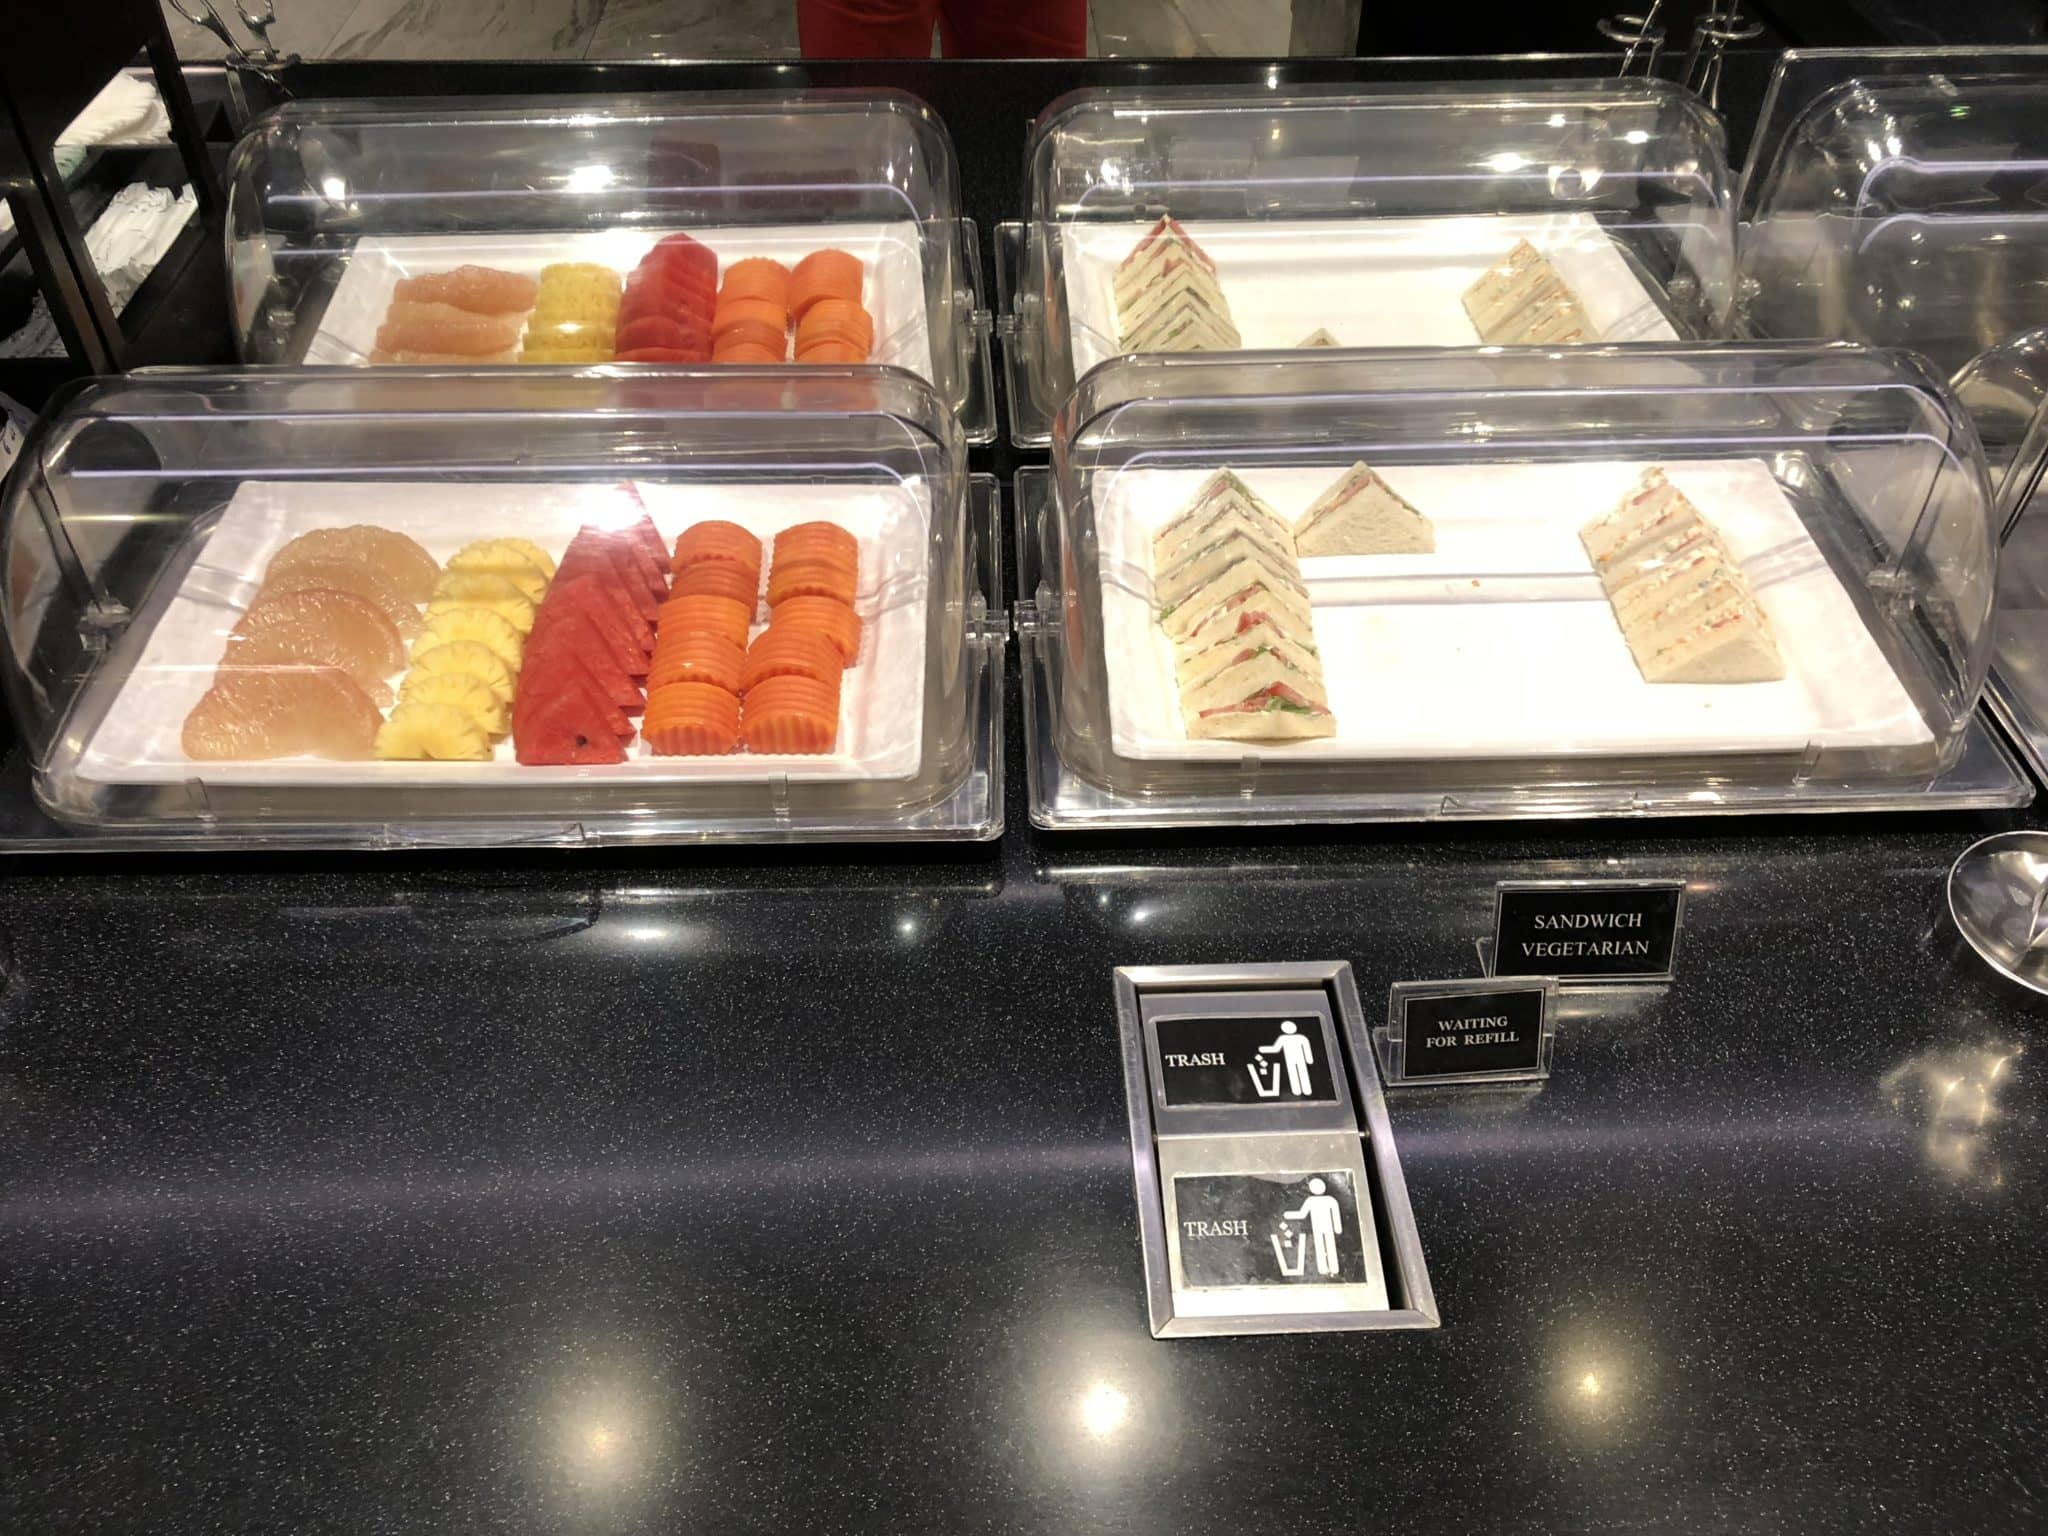 EVA Air Lounge Bangkok Sandwiches Fruechte